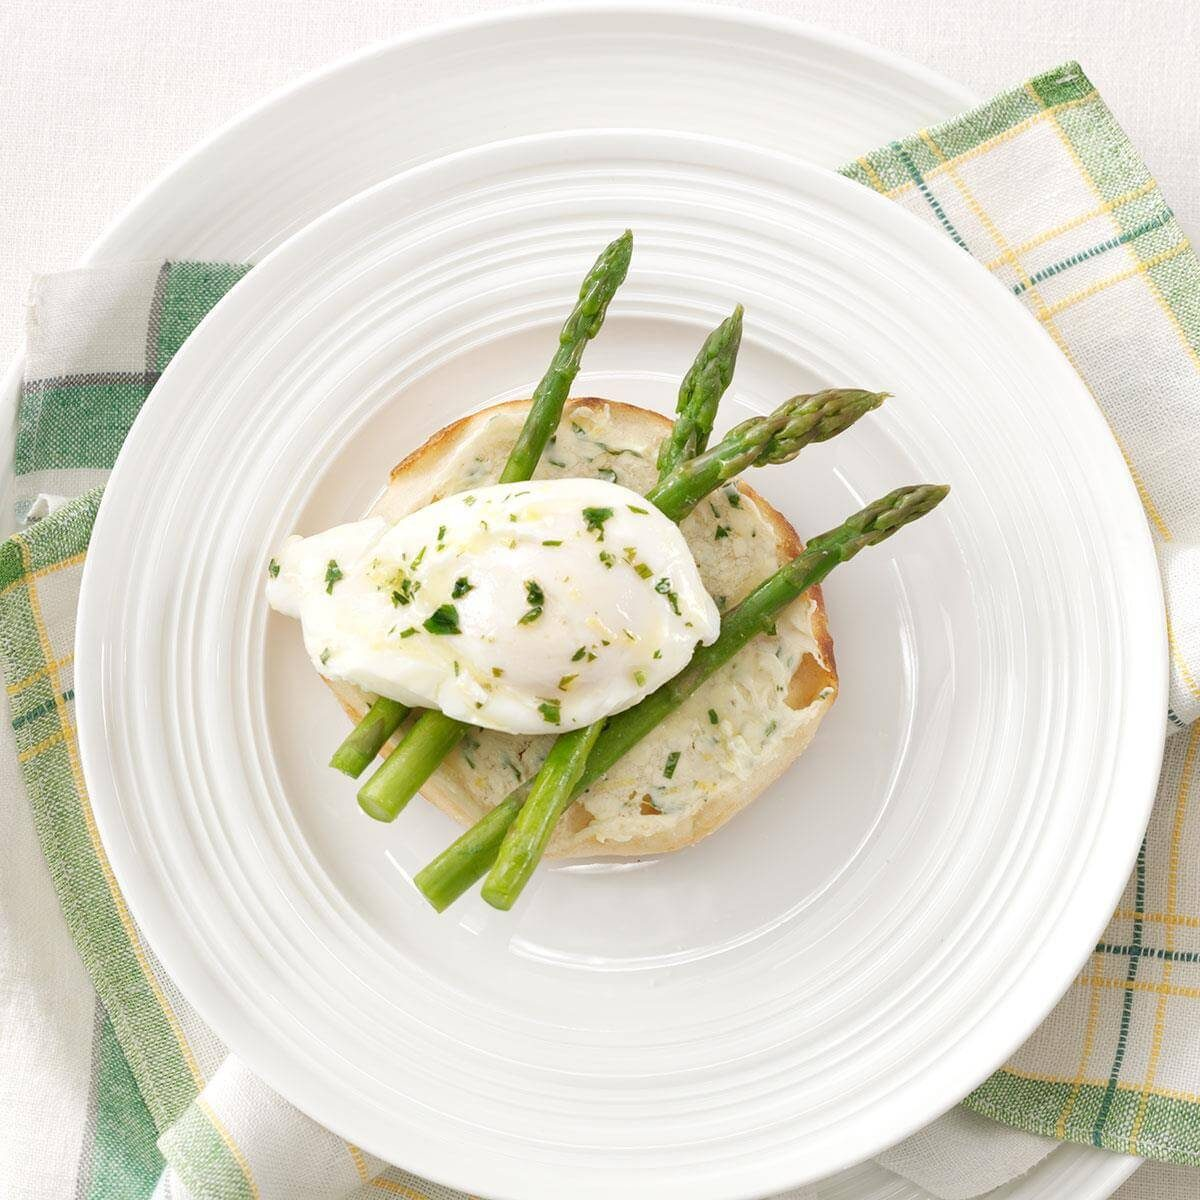 Poached egg with asparagus and lemon